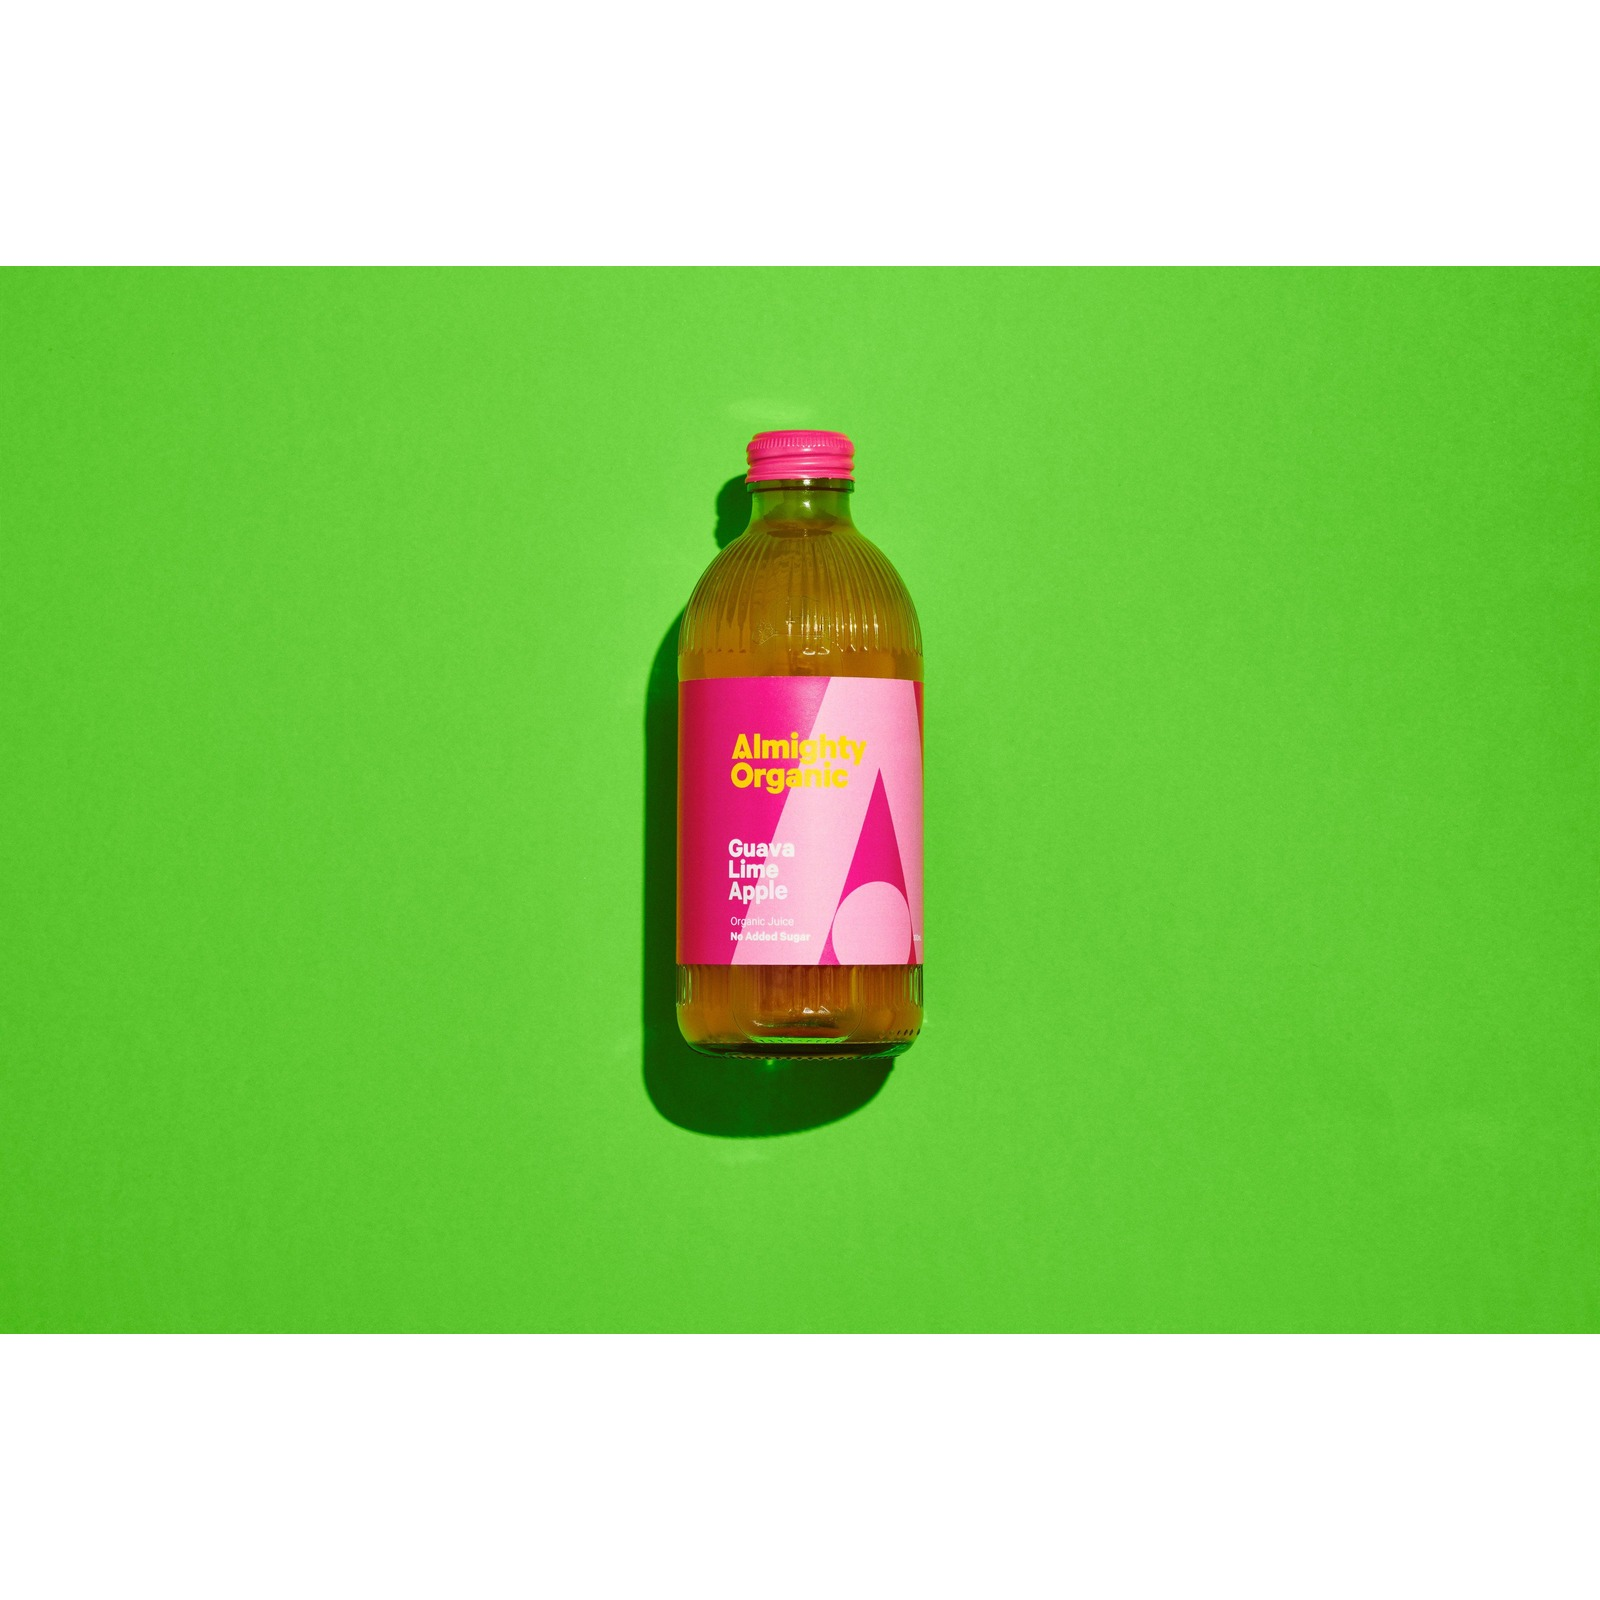 Drink Almighty Organic Juice - Guava Lime Apple 300ML X 12